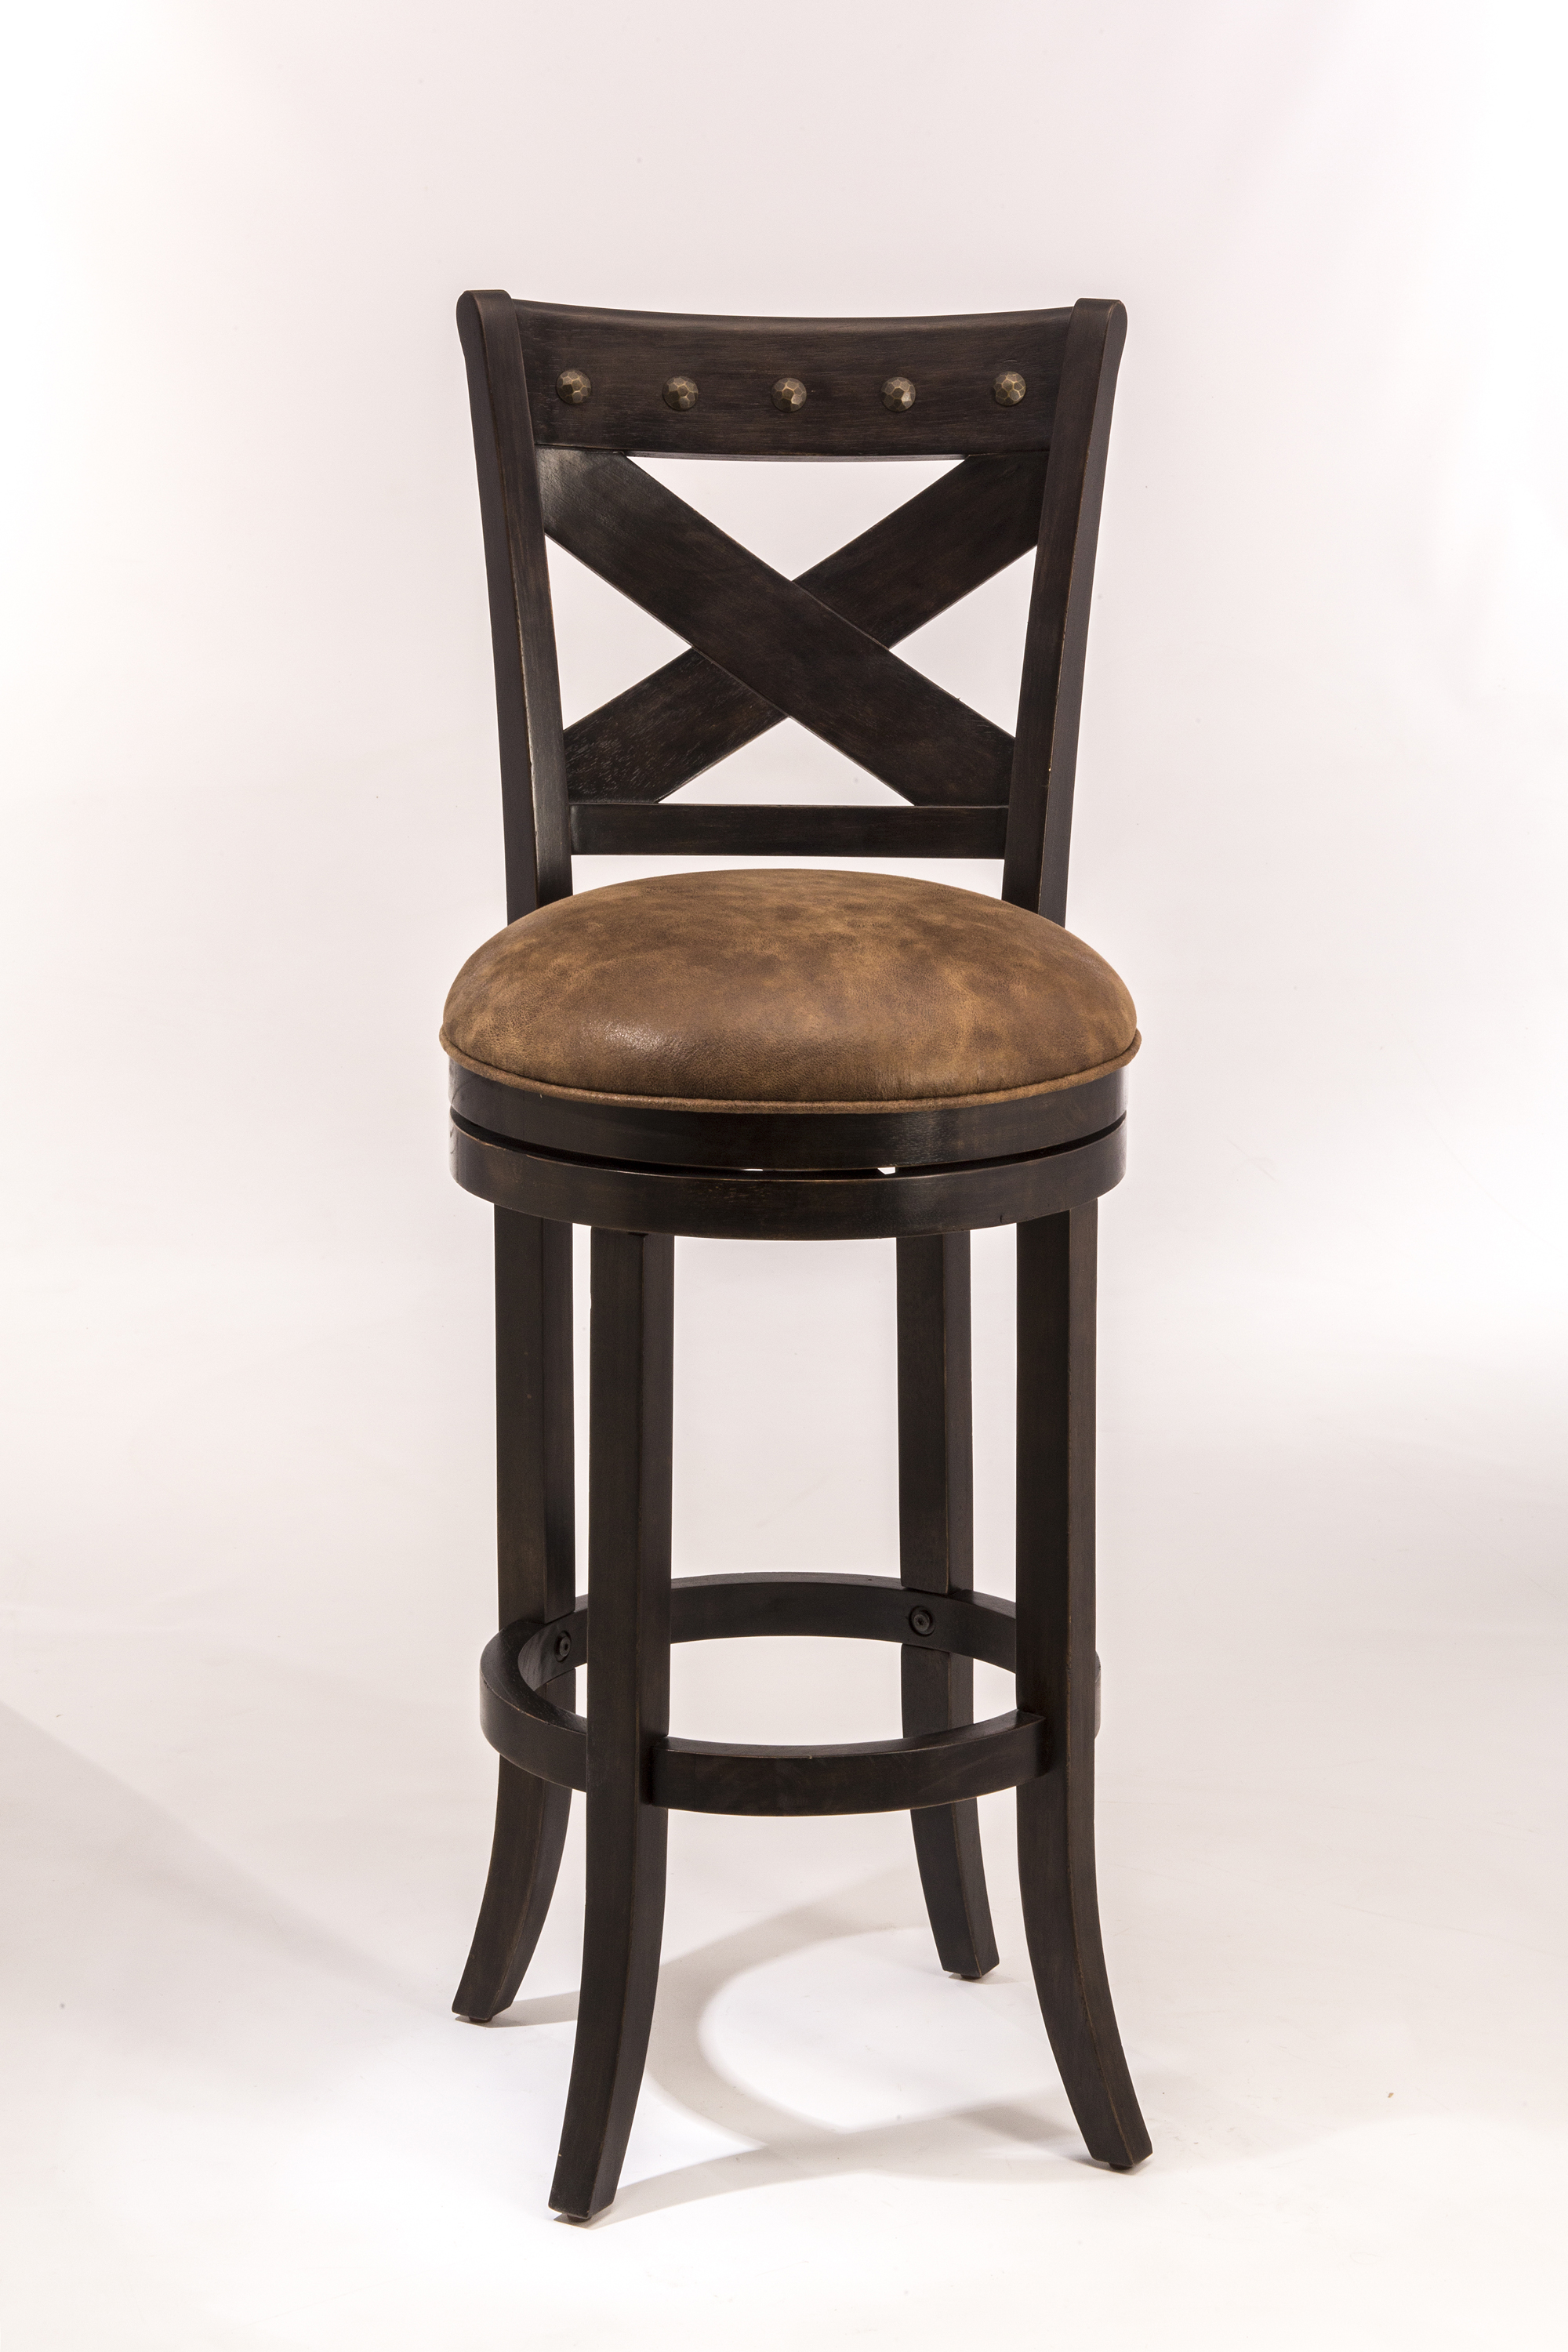 Wooden Swivel Bar Stools ~ Hillsdale wood stools swivel bar height stool